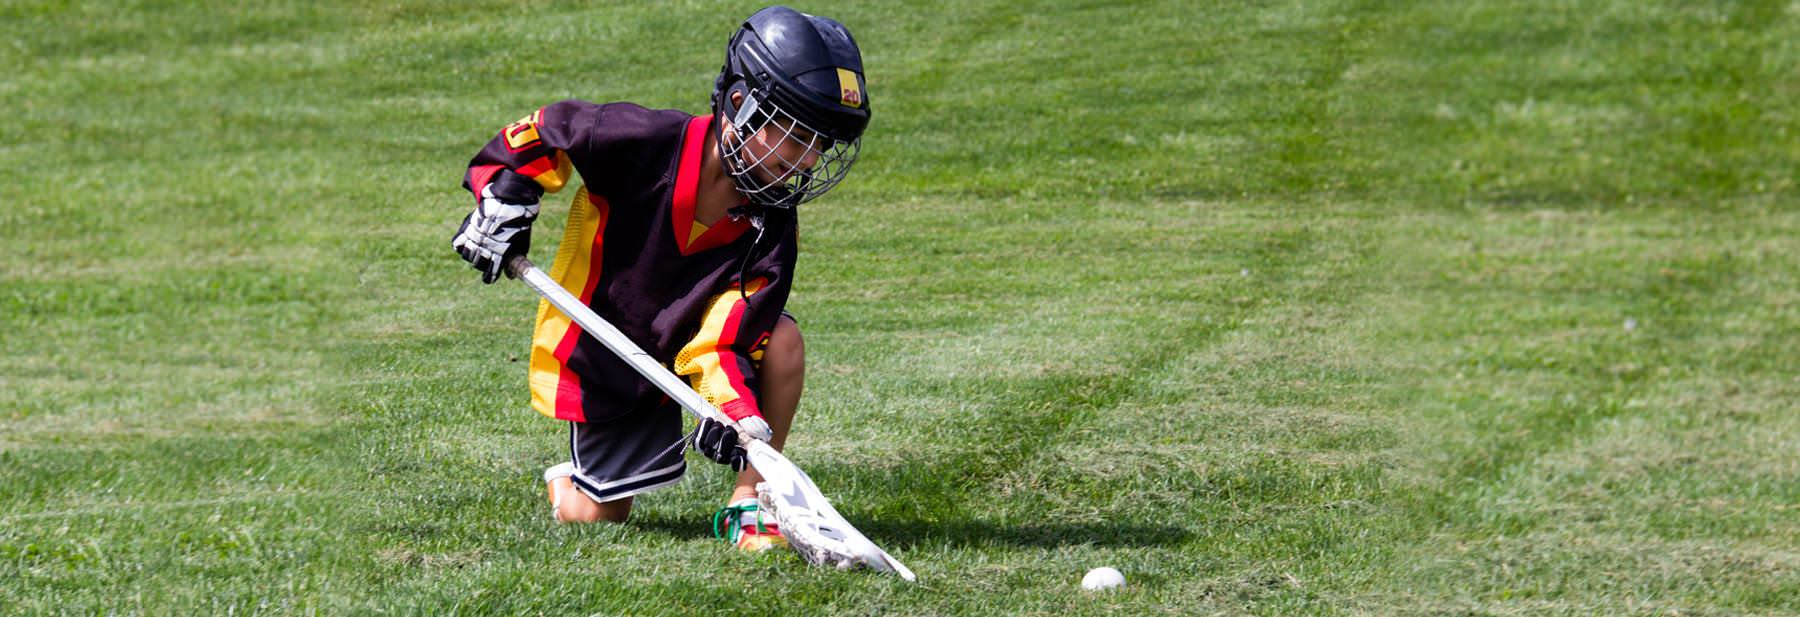 Lacrosse Management Software for Clubs